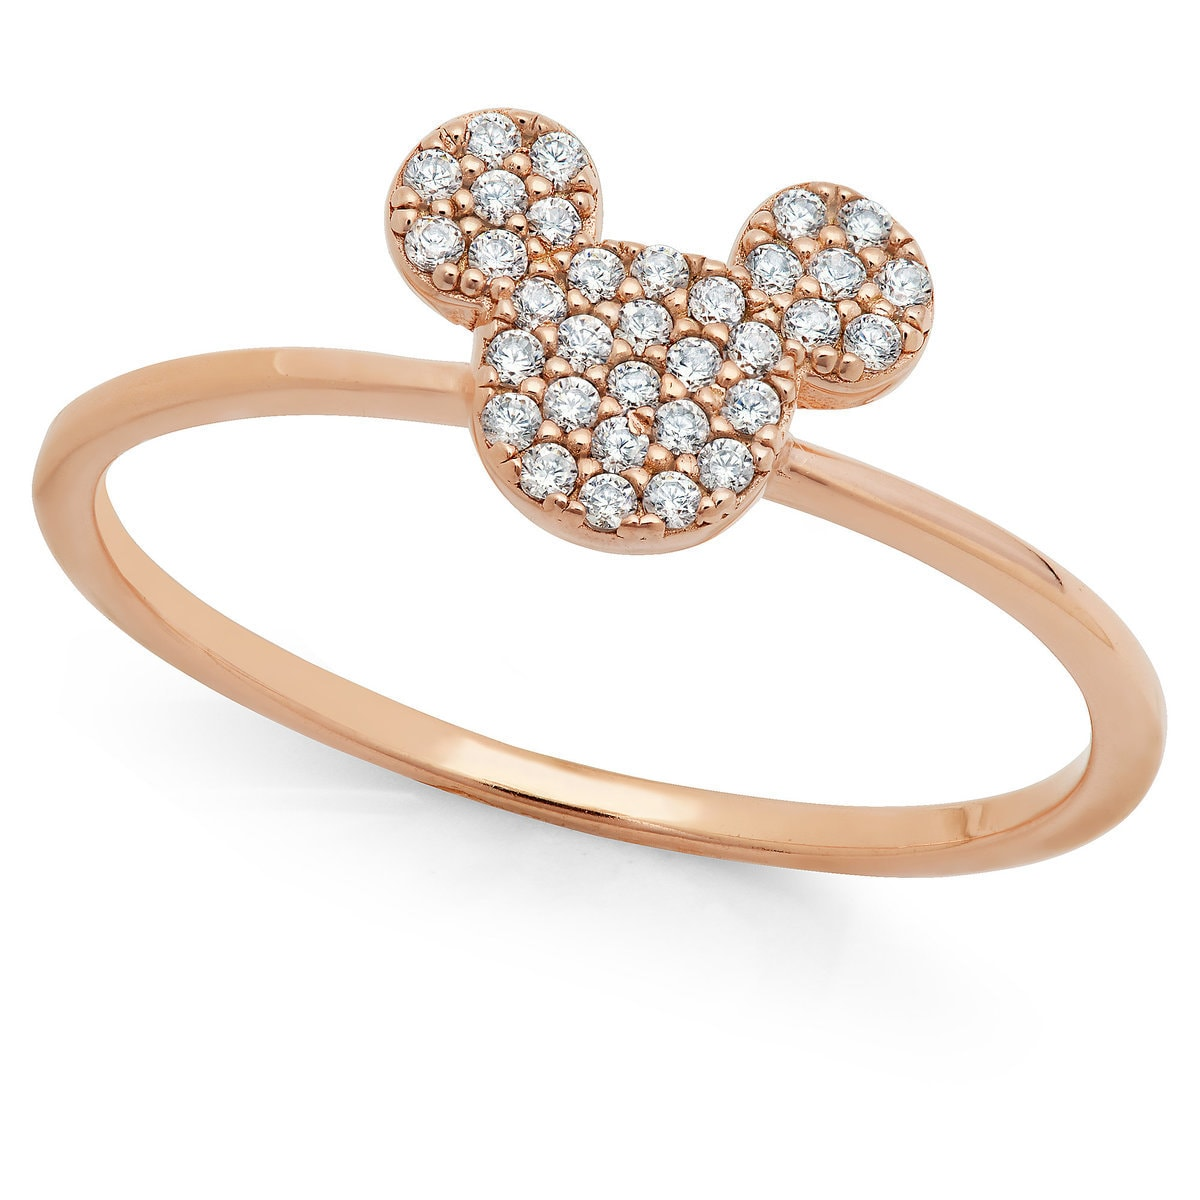 Mickey Mouse Icon Ring by CRISLU - Rose Gold | shopDisney